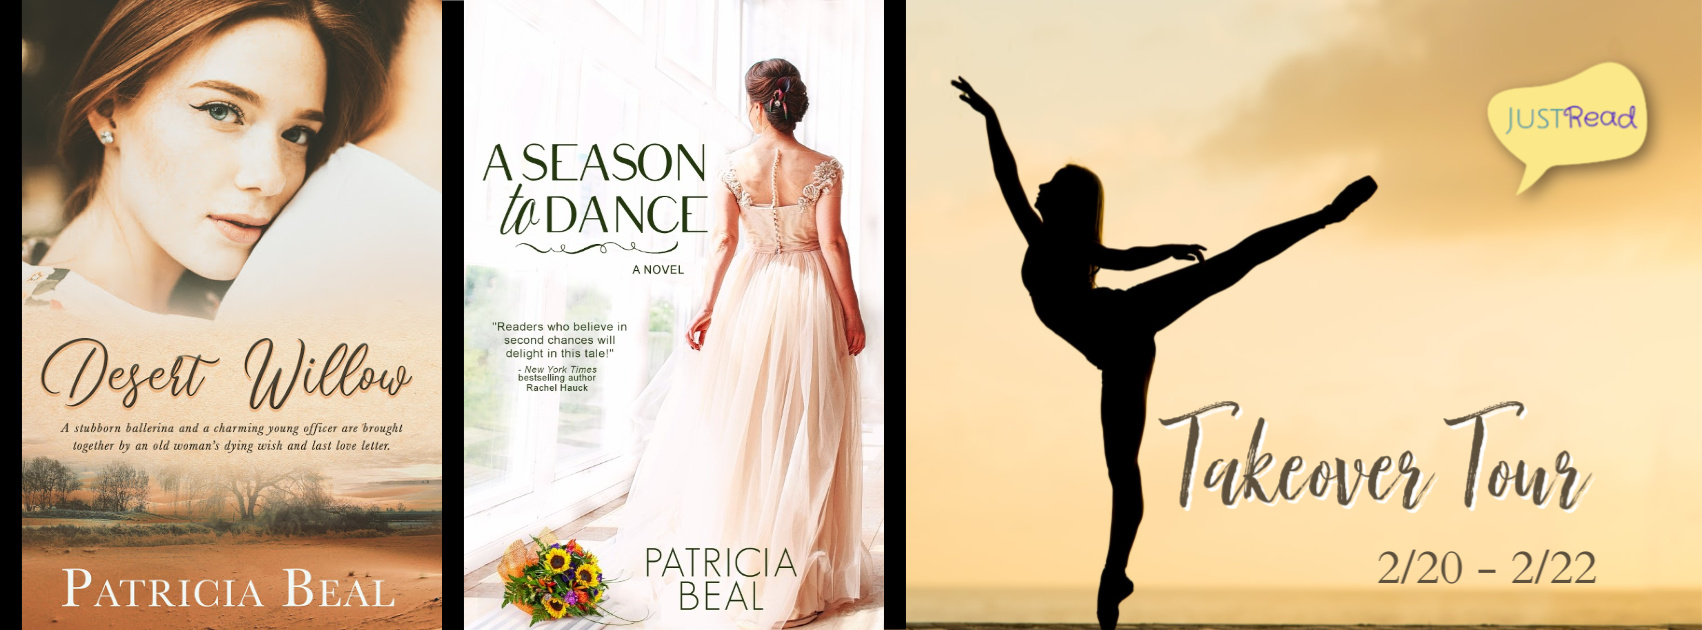 Welcome to A Season to Dance & Desert Willow Takeover Tour & Giveaway!